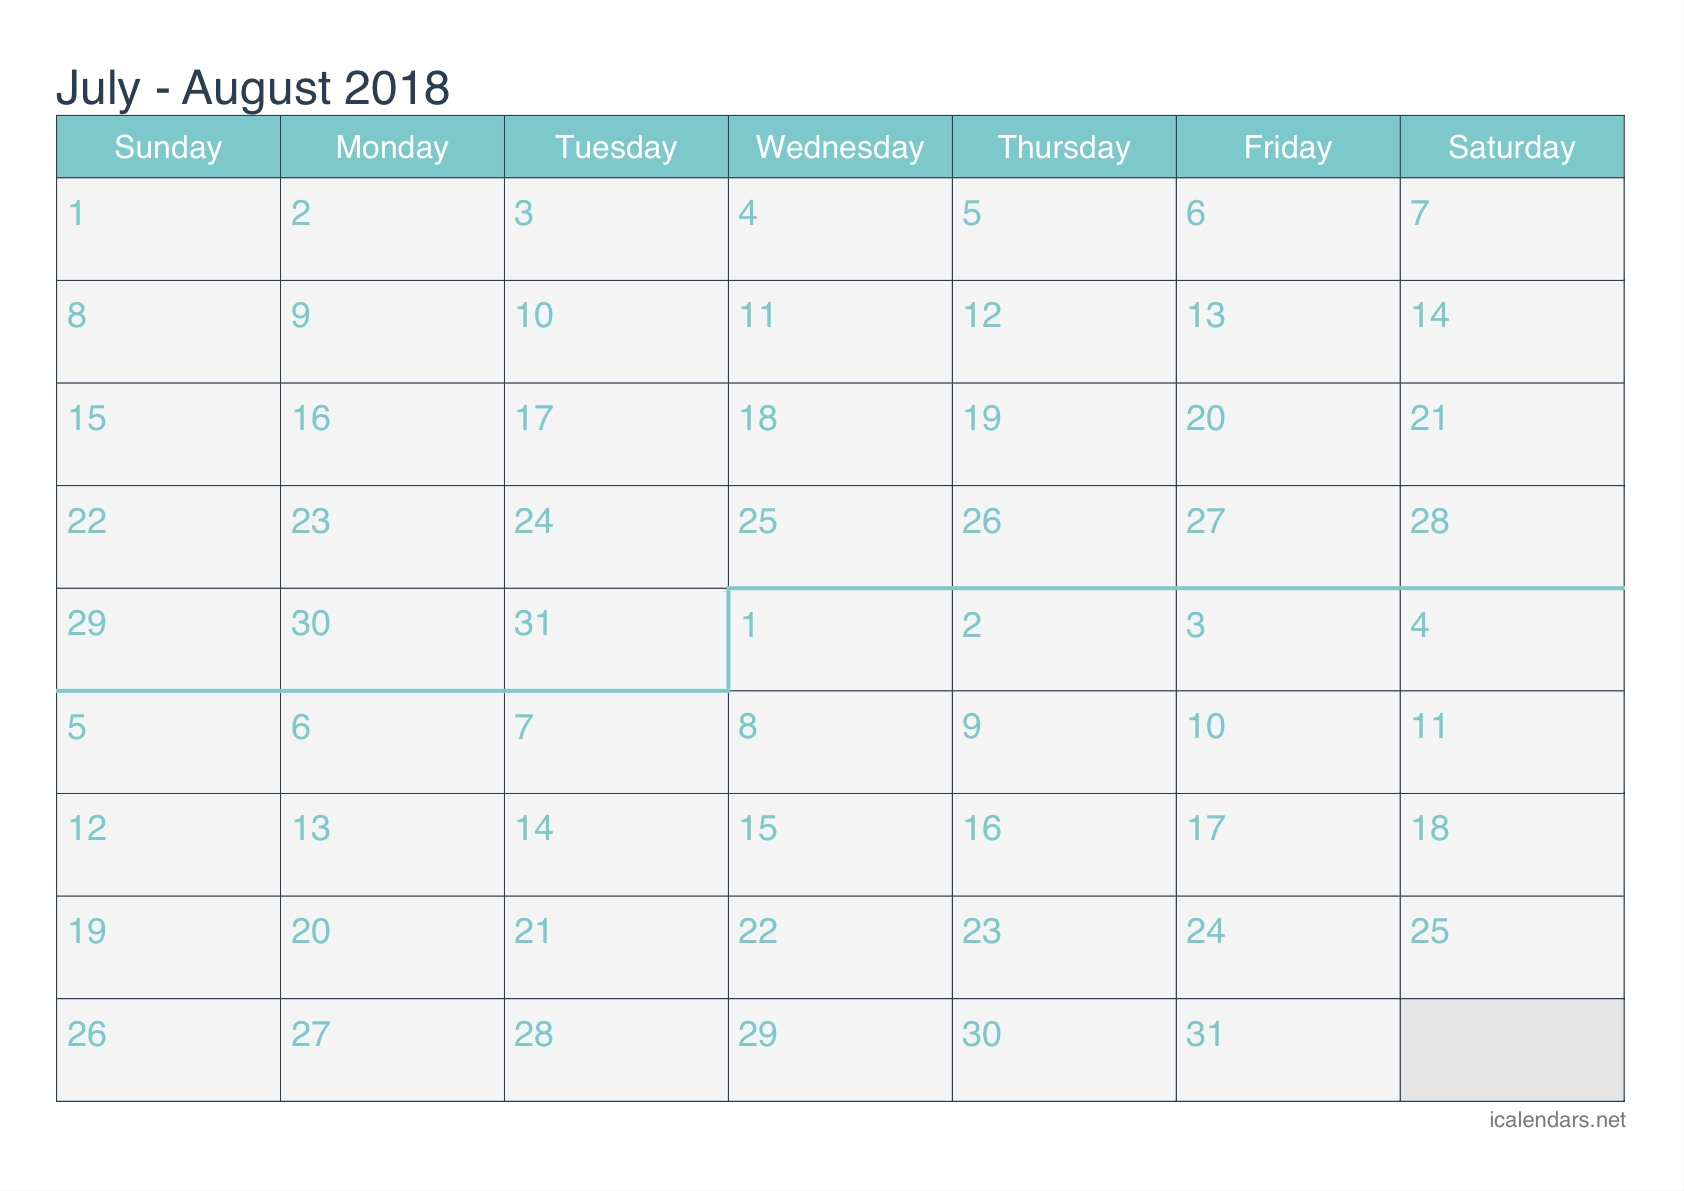 Calendar July August 2018 Printable Template Free Download-July And August Blank Schedule